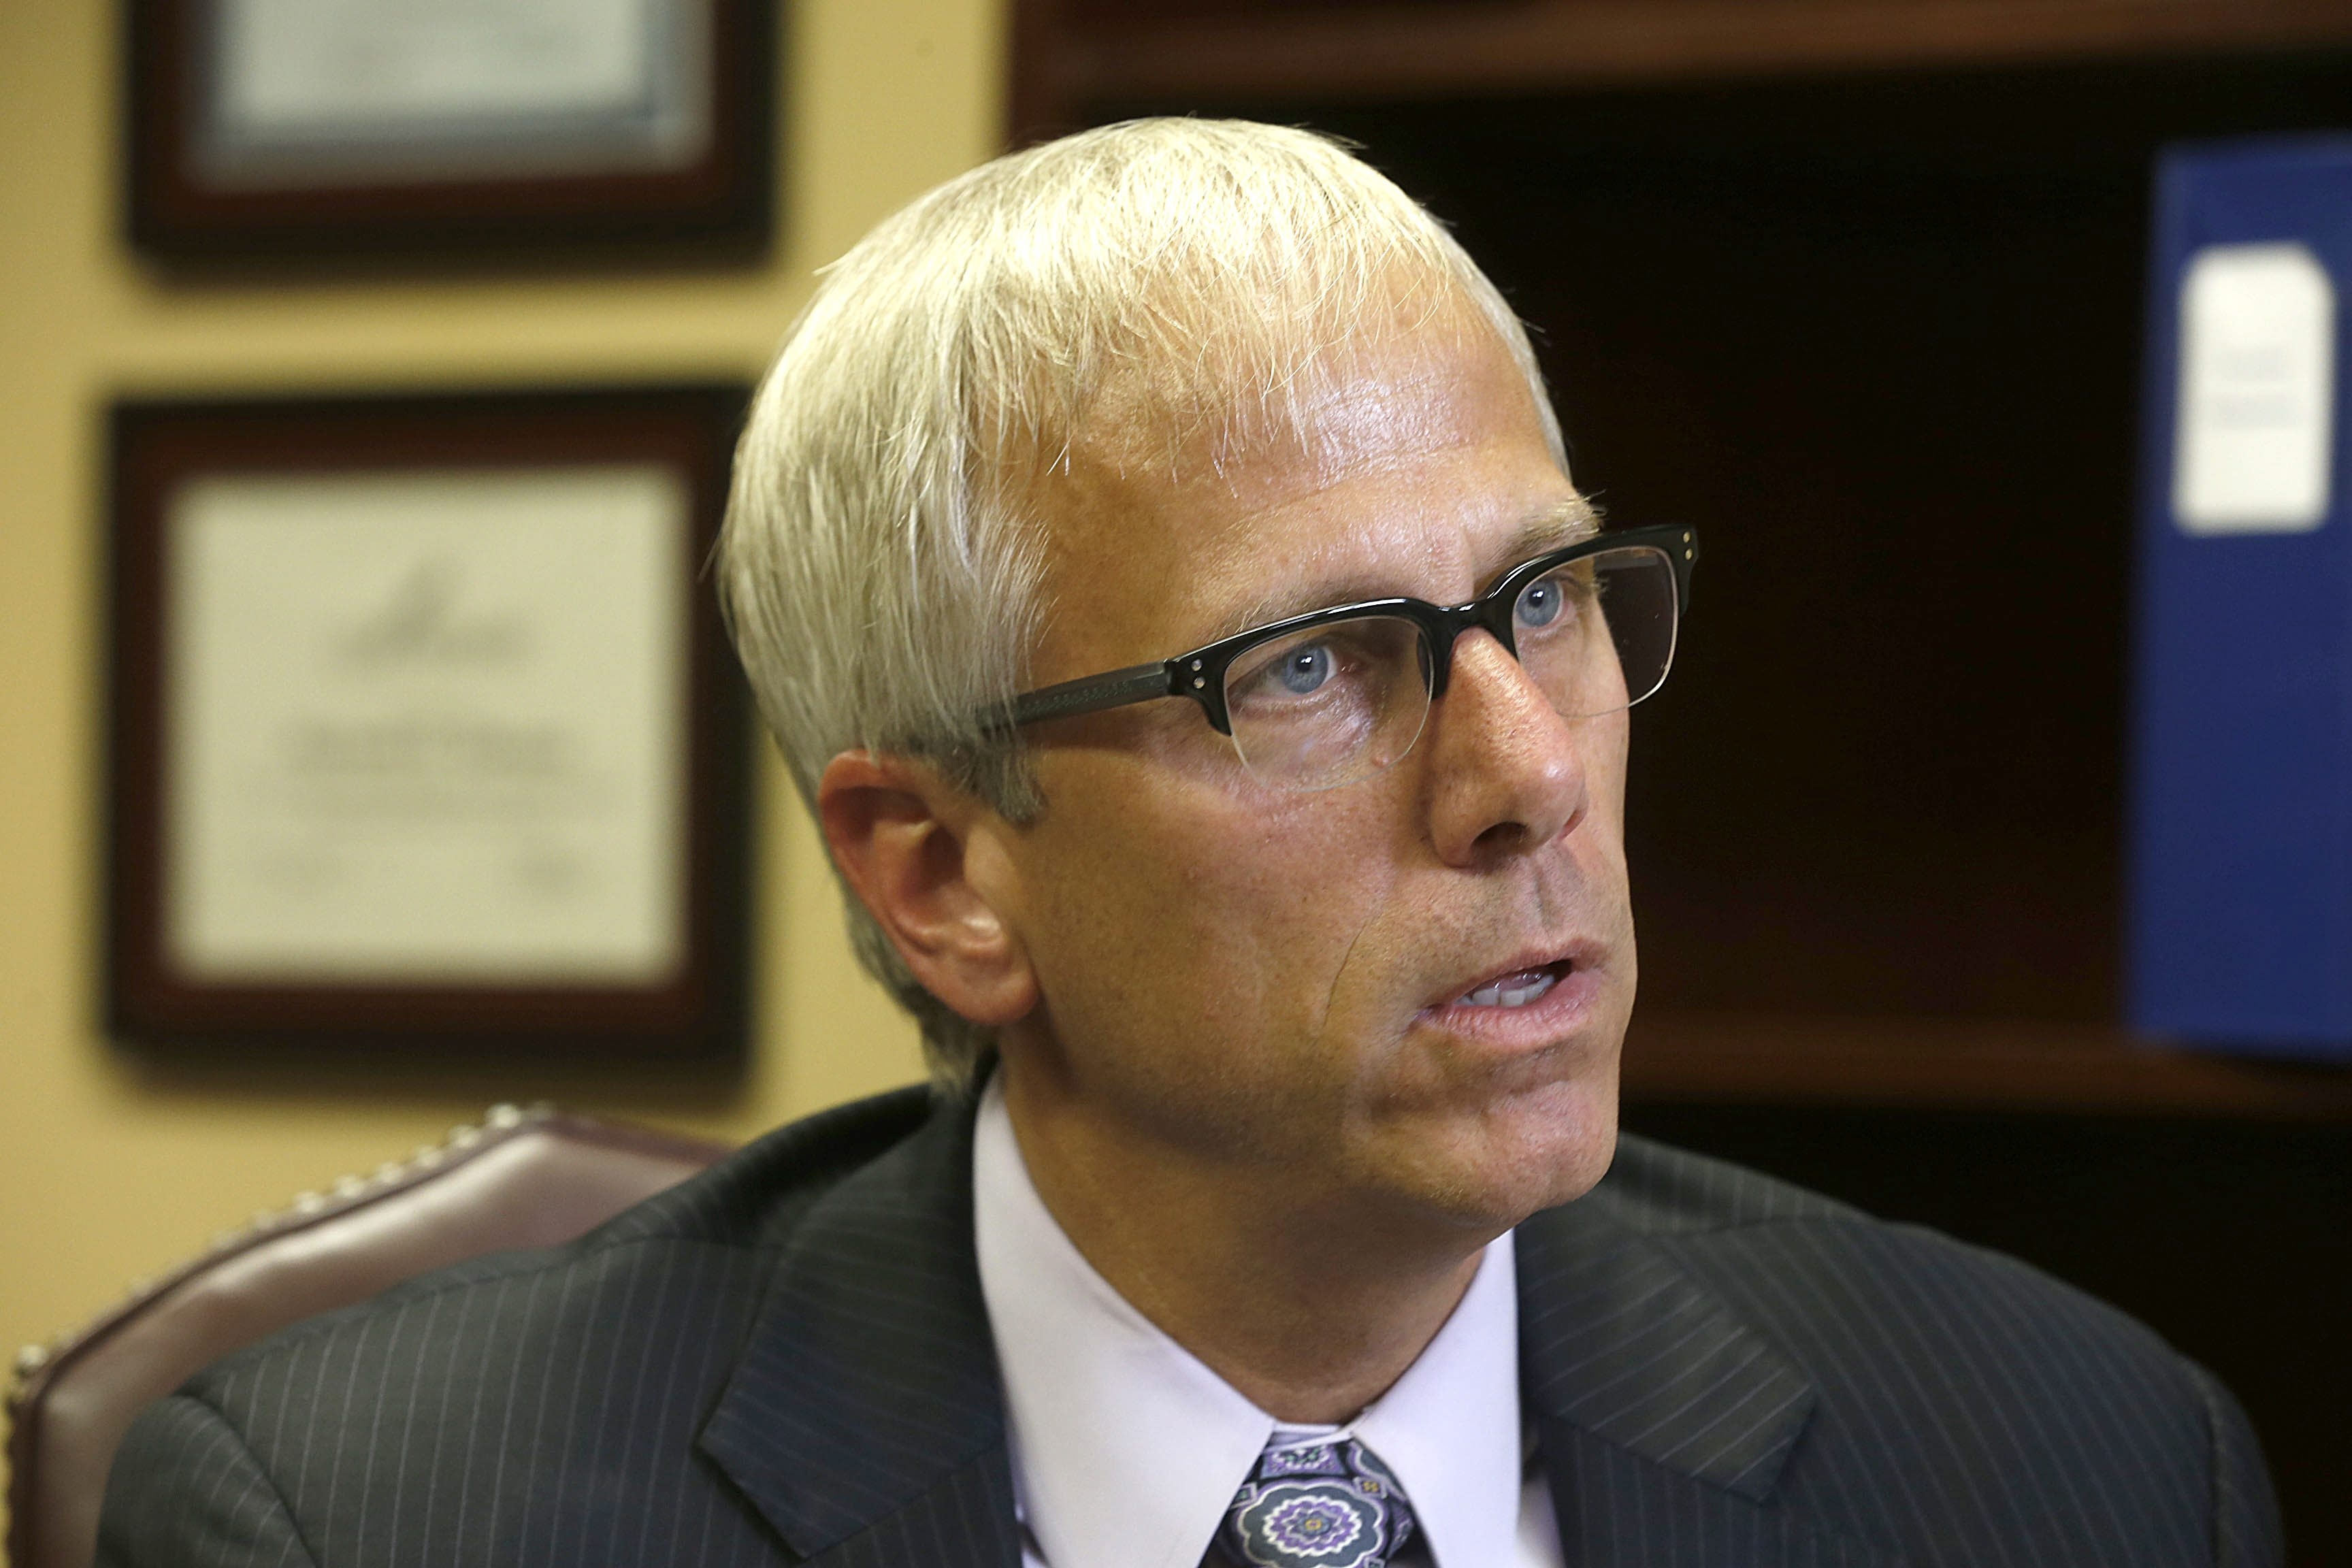 ECMC has agreed to pay ts former CEO Richard Cleland $1.2 million in a settlement announced Wednesday, seven weeks after his ouster.  (Robert Kirkham/Buffalo News)